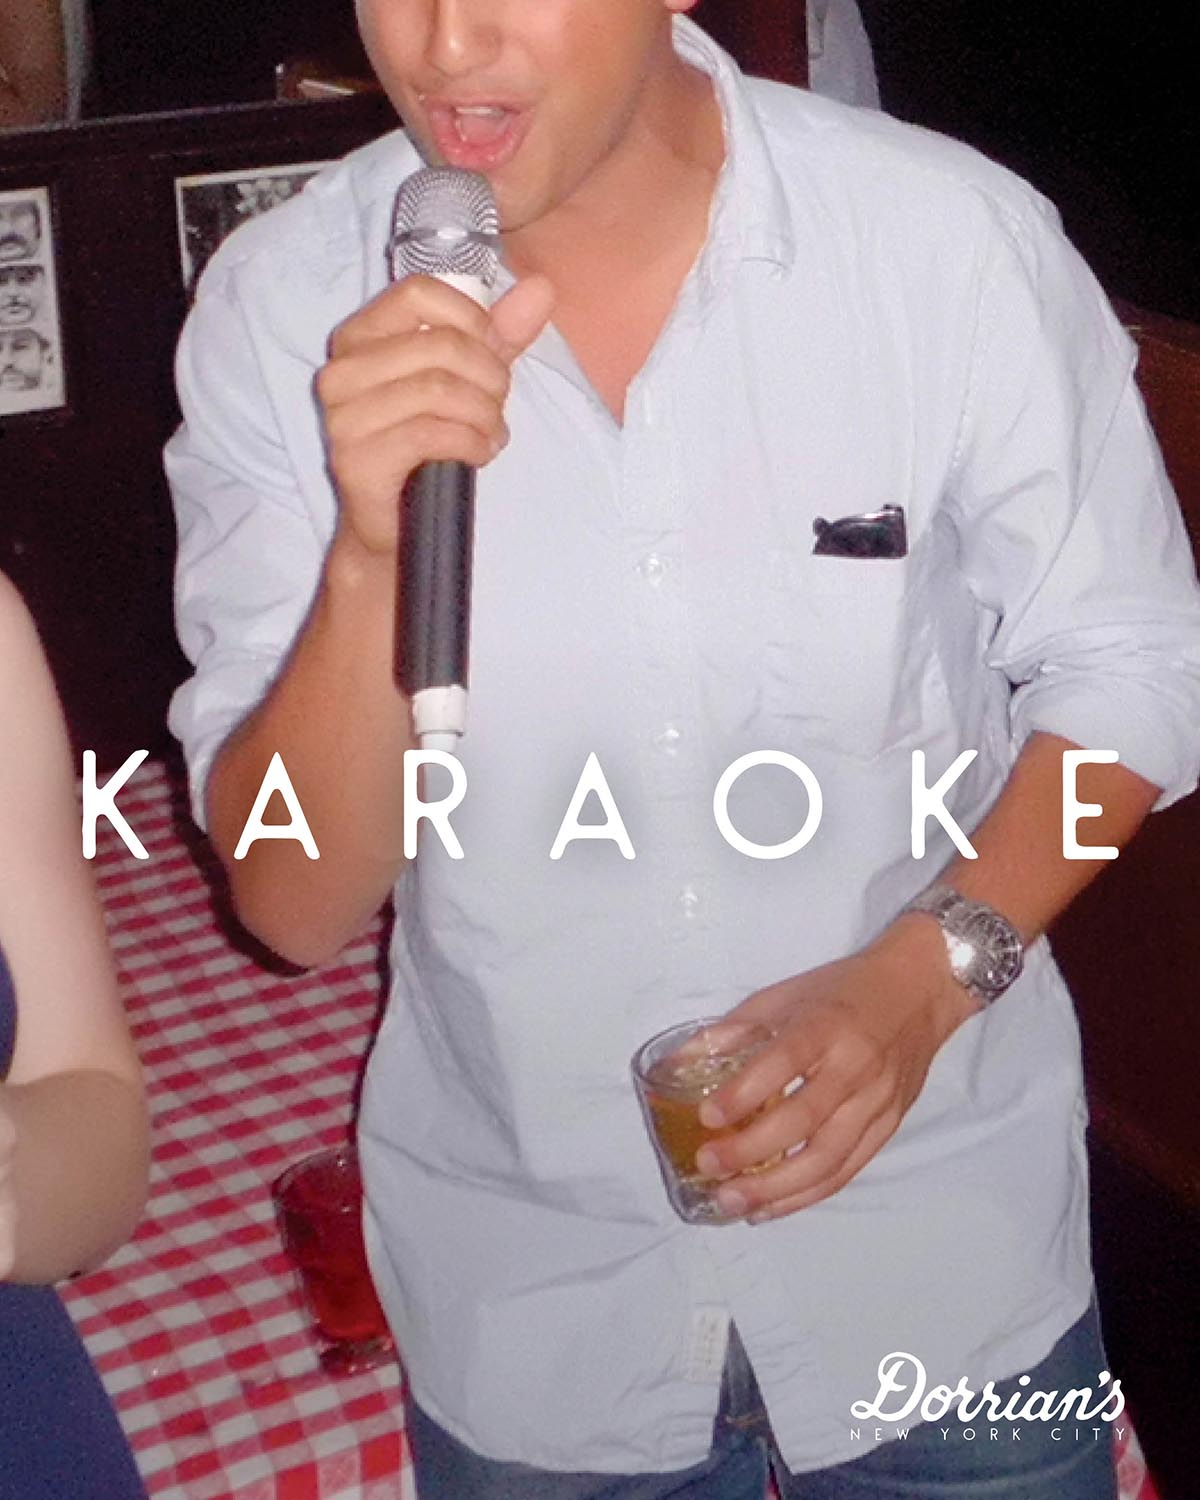 drh_nyc-2019-insta-events-karaoke-one-guy-two-girls-1500.jpg